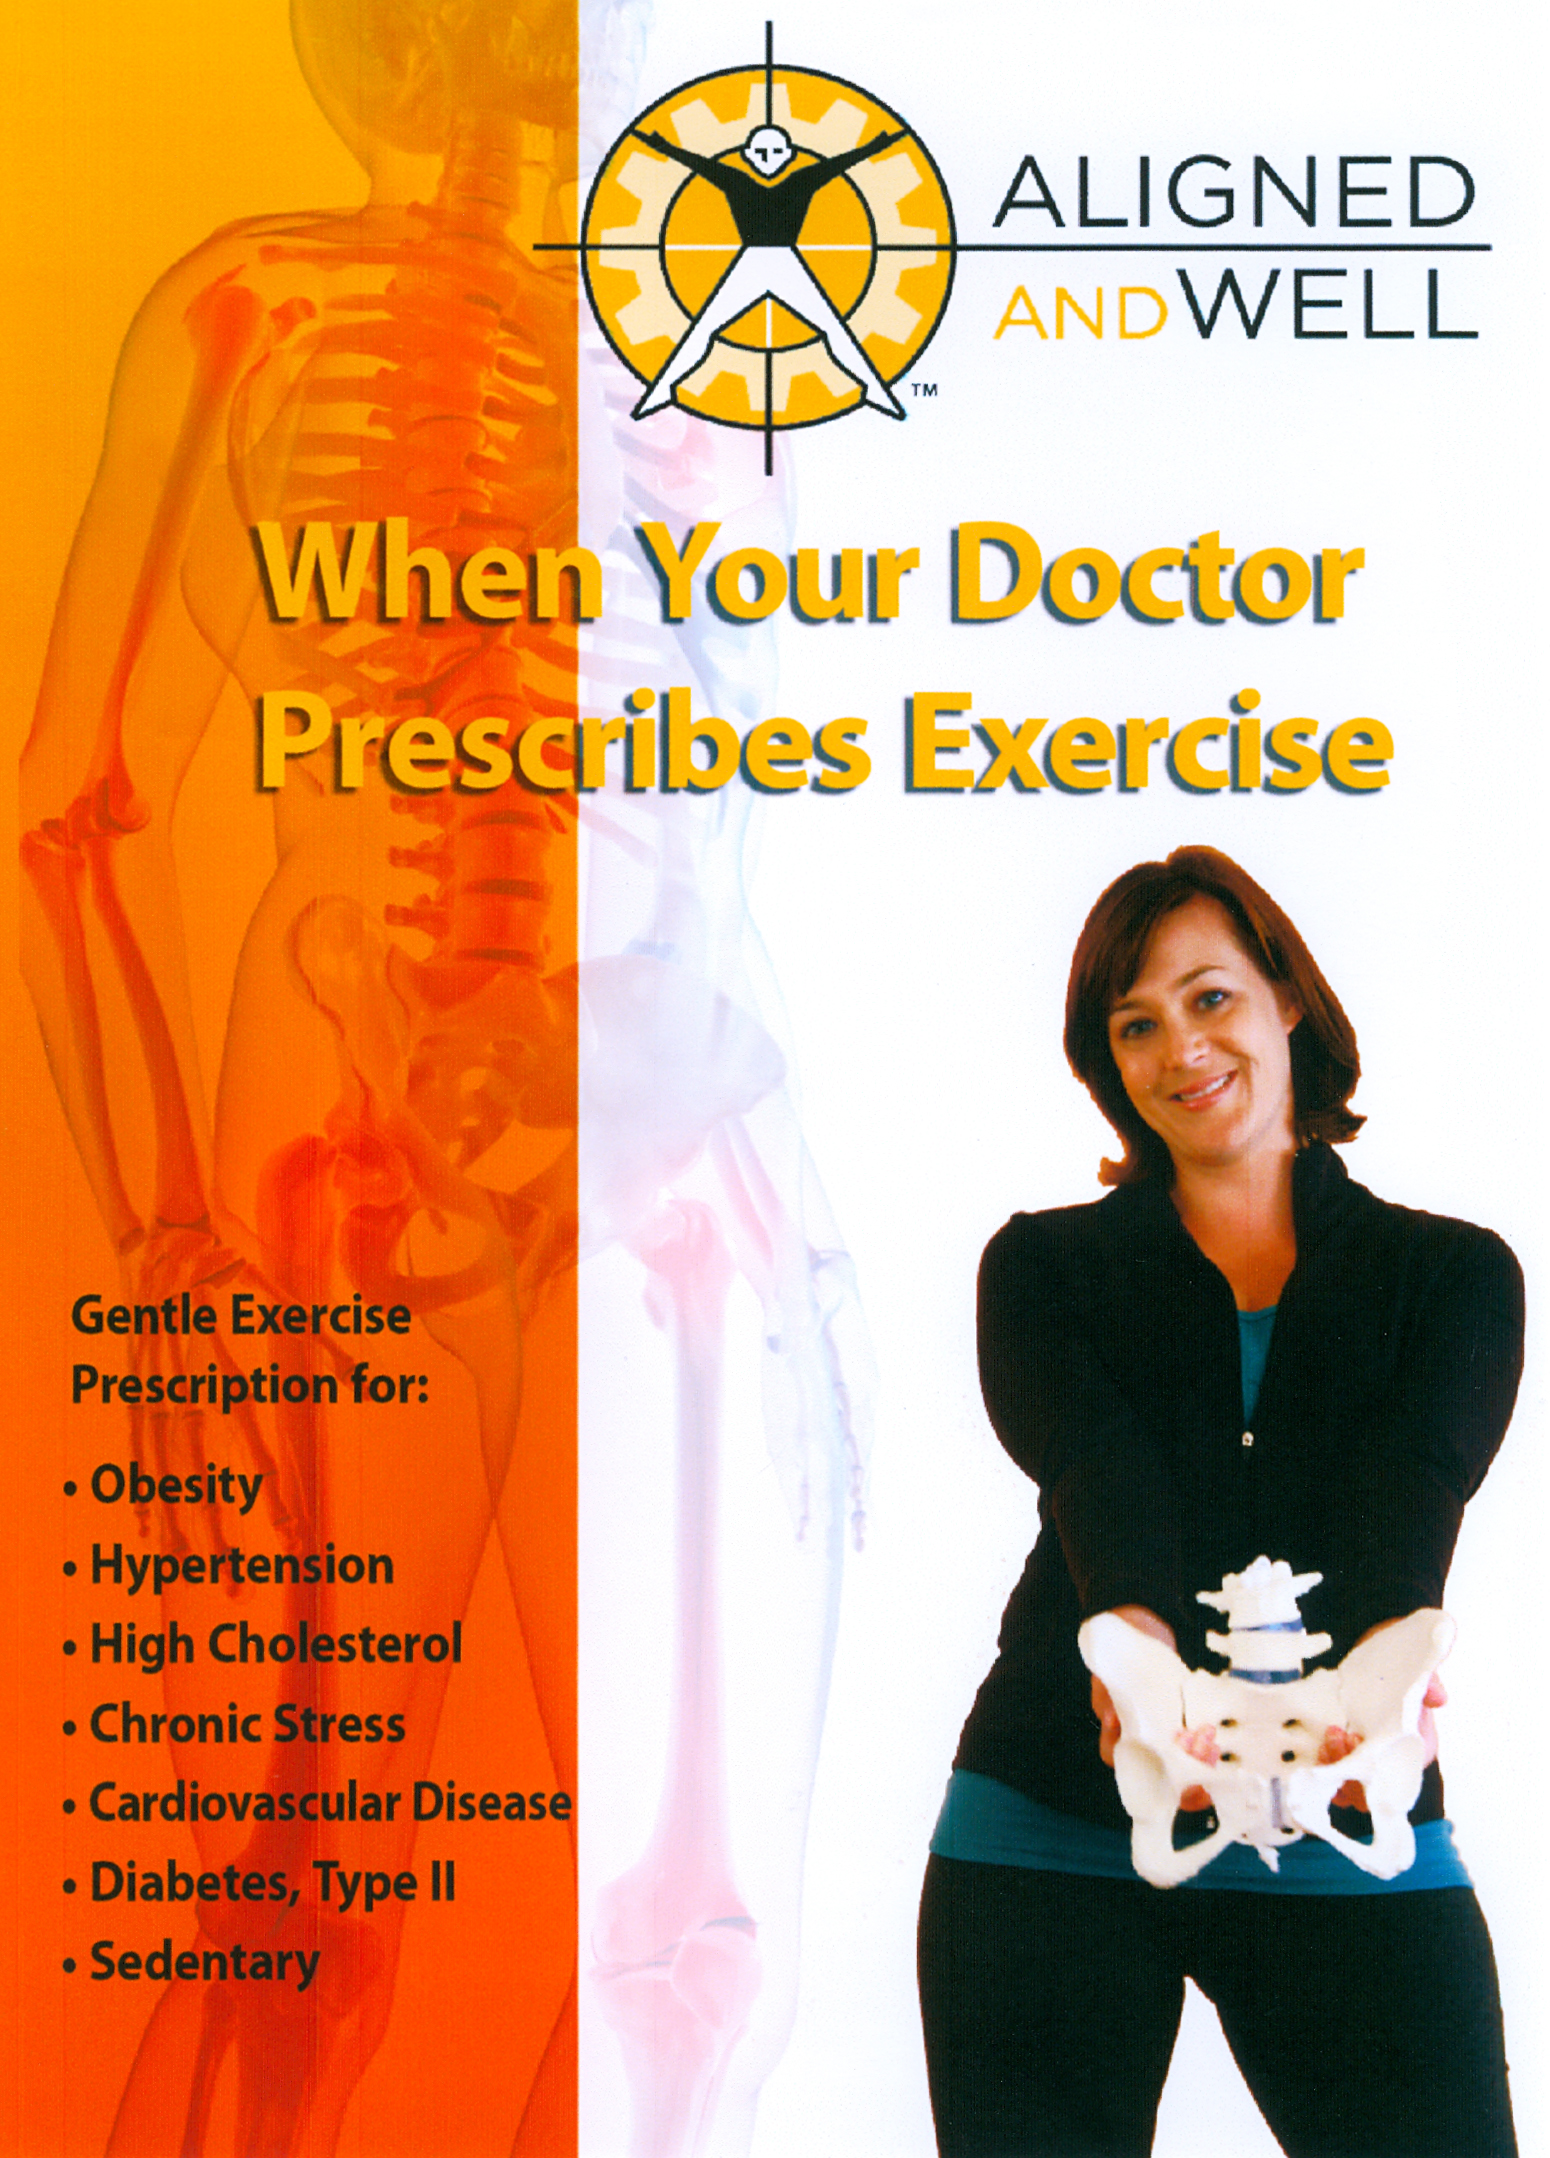 Aligned and Well: When Your Doctor Prescribes Exercise